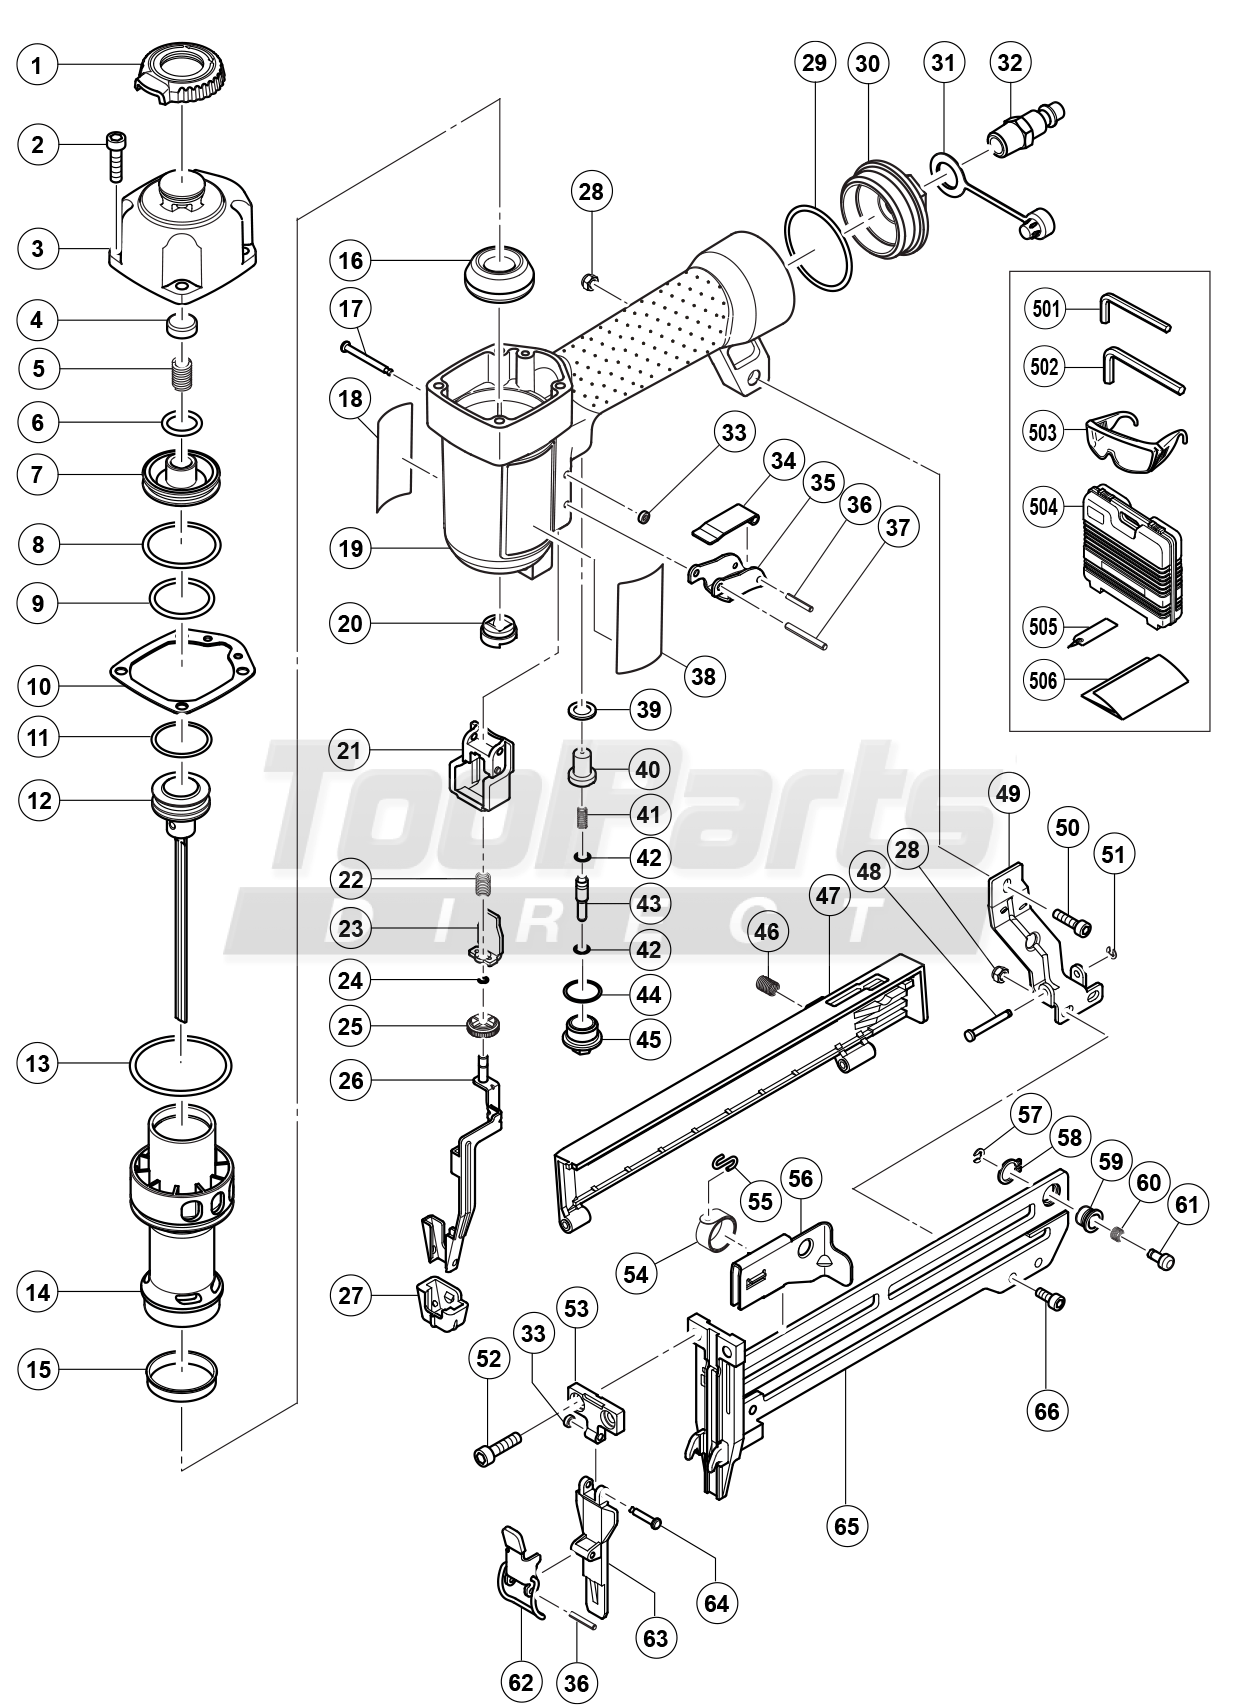 Stapler drawing components. Hitachi n ab in